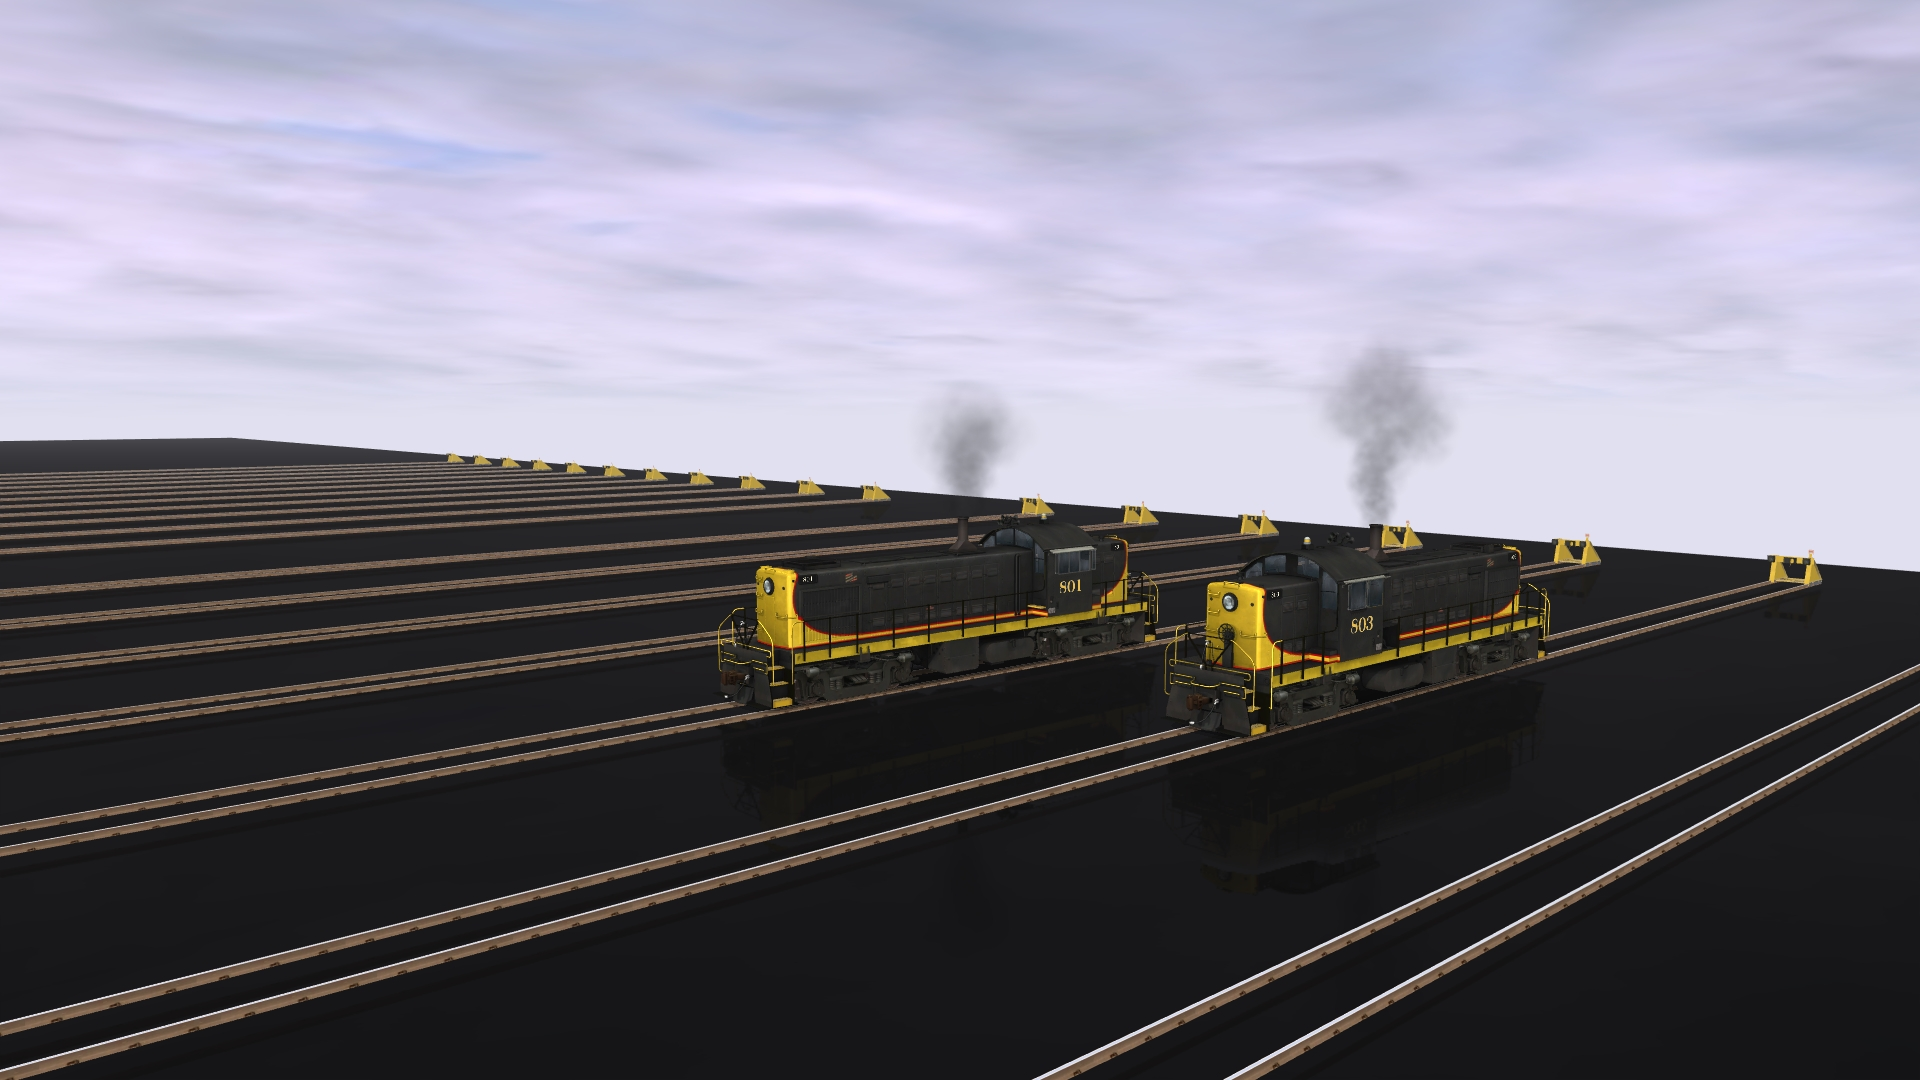 Trainz Alco Images - Reverse Search